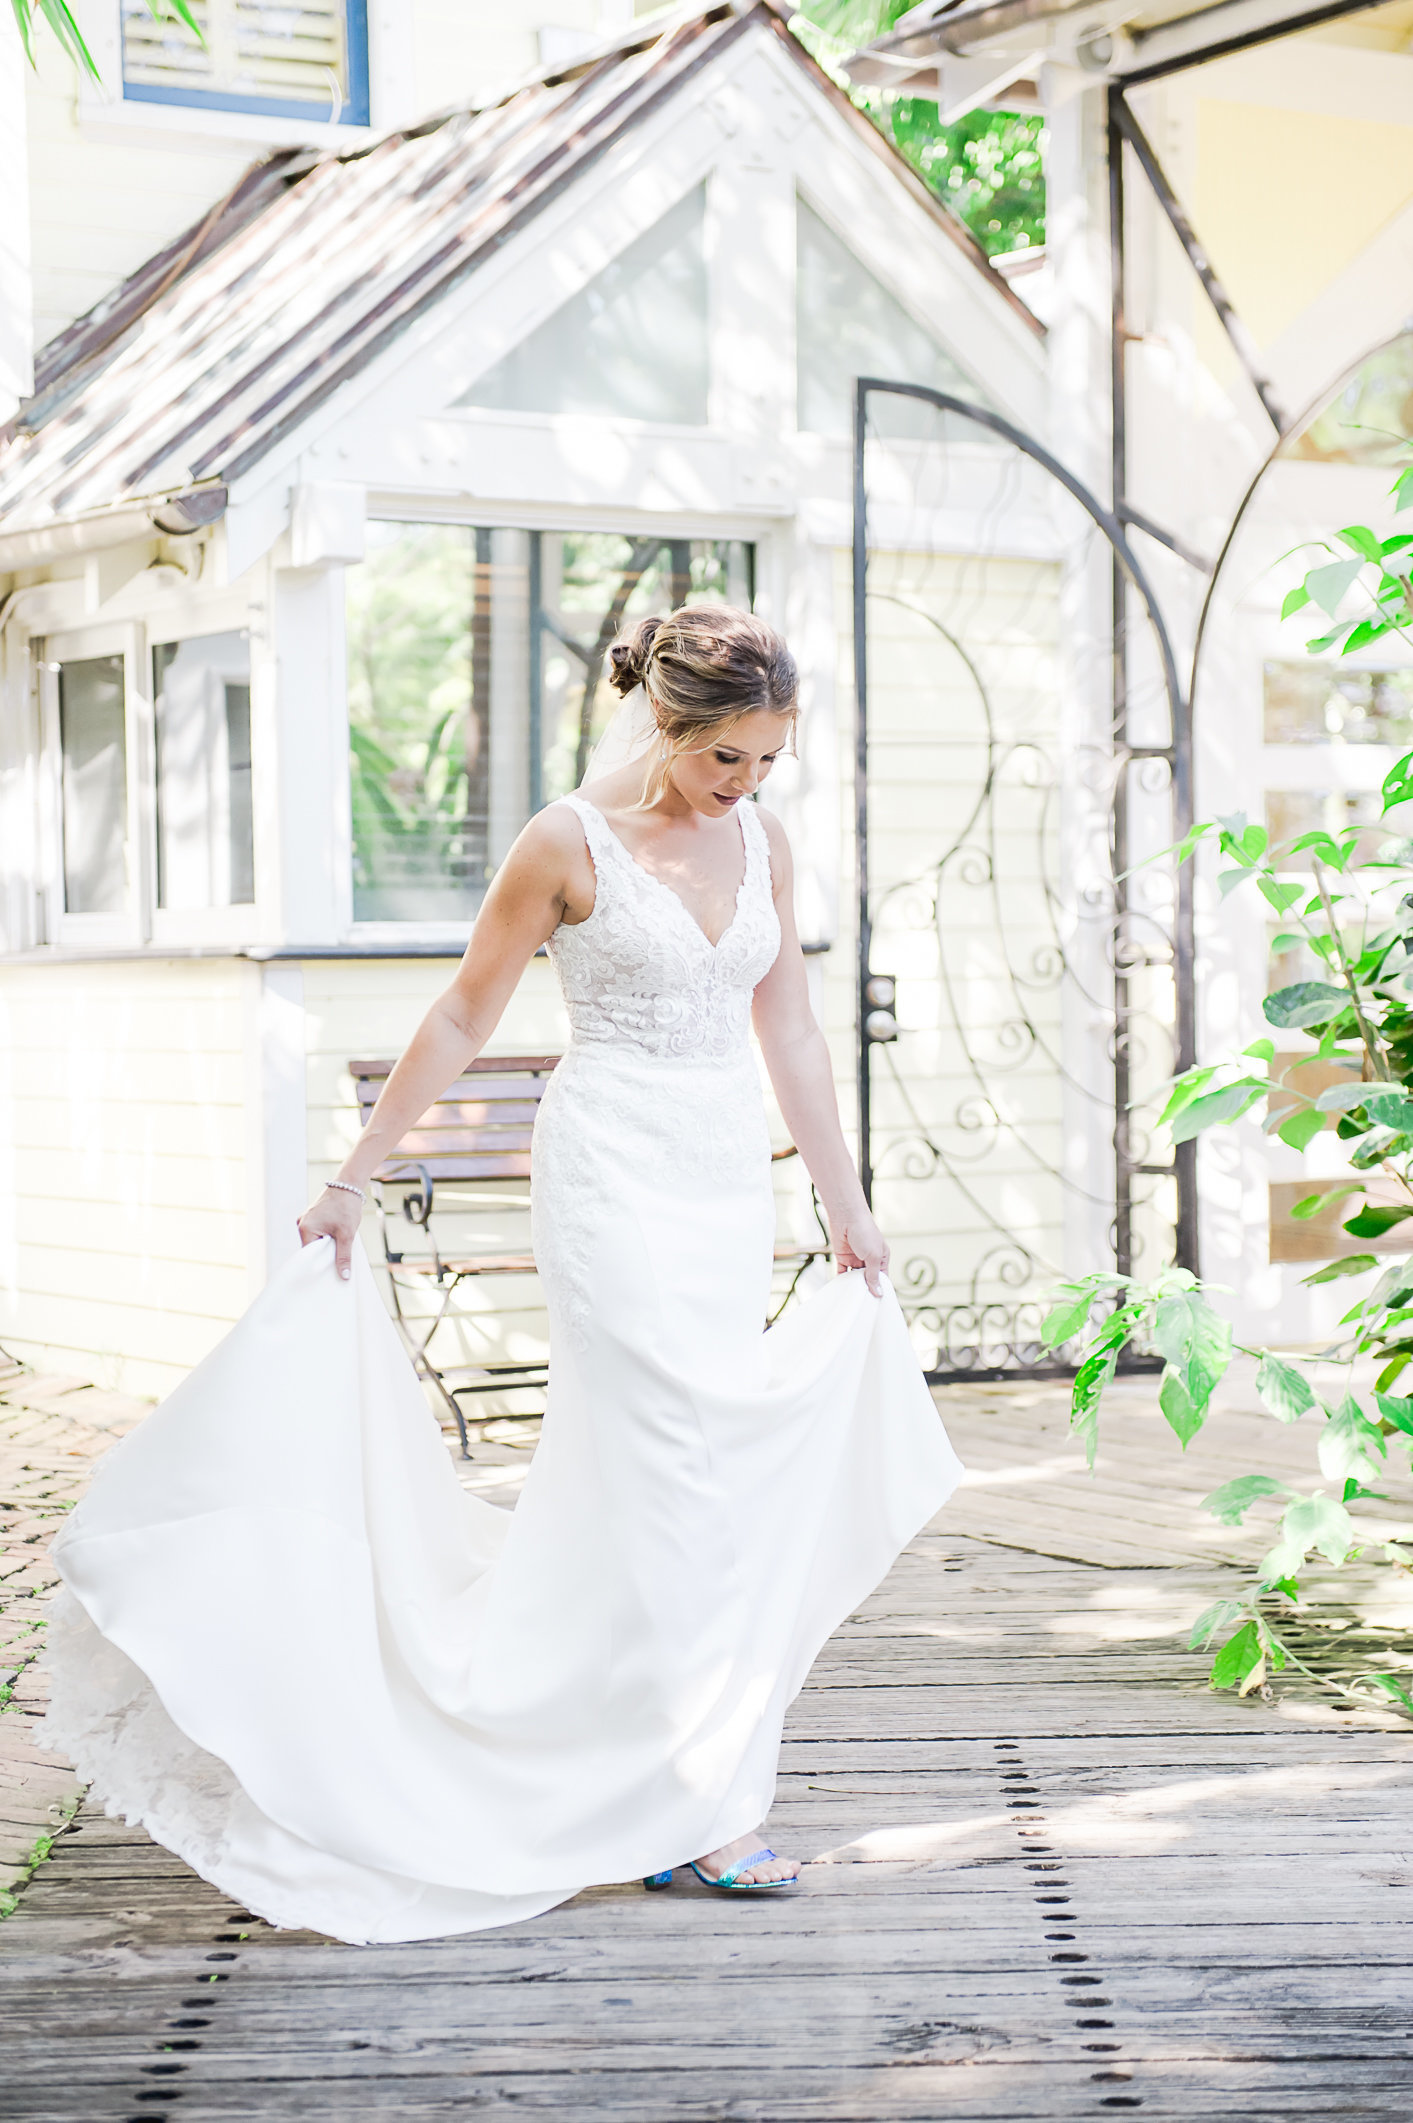 Twirling Bride - Sundy House by Palm Beach Photography, Inc.